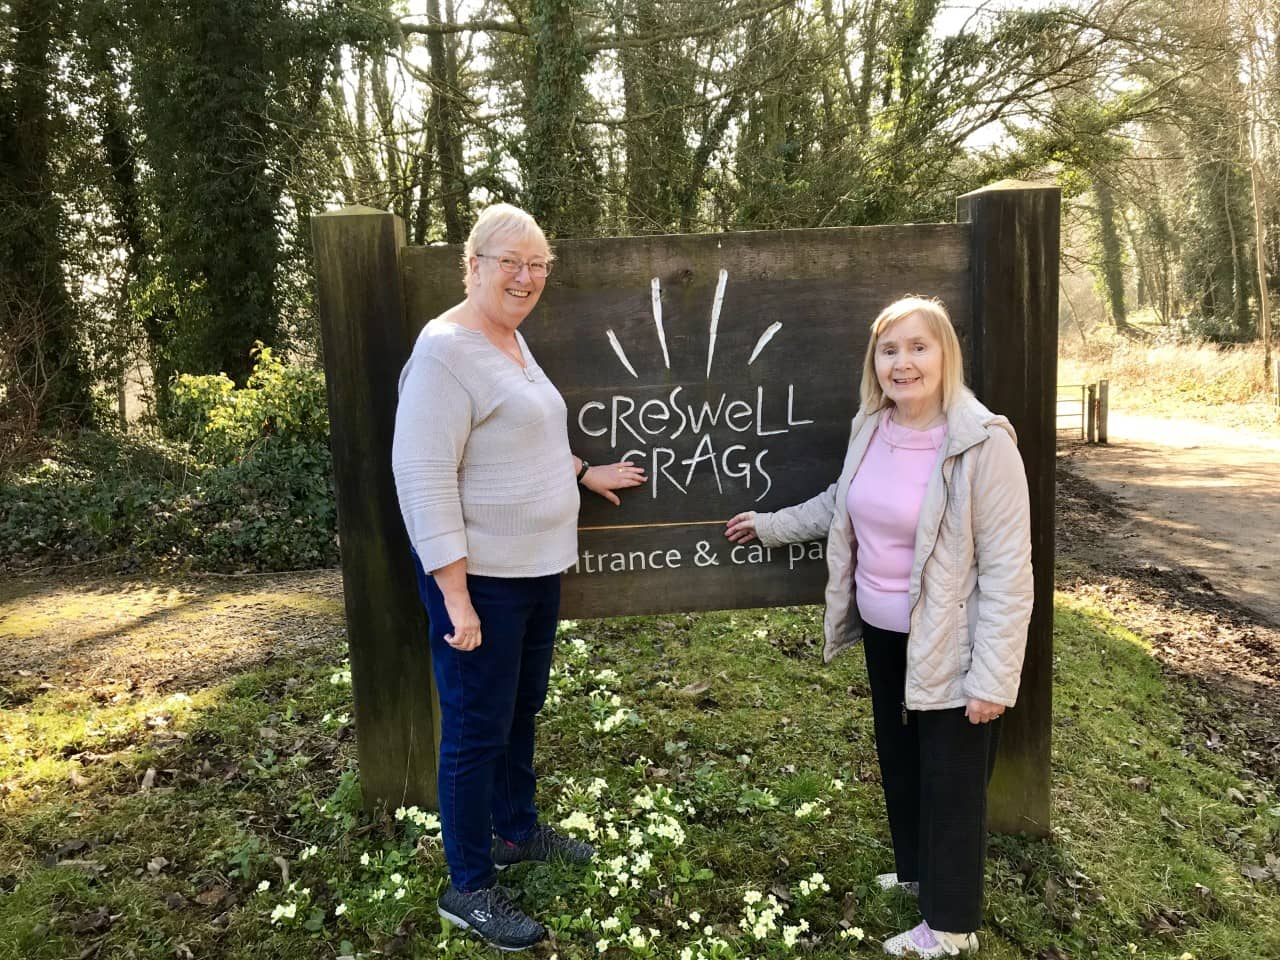 Residents outside Creswell Crags sign.